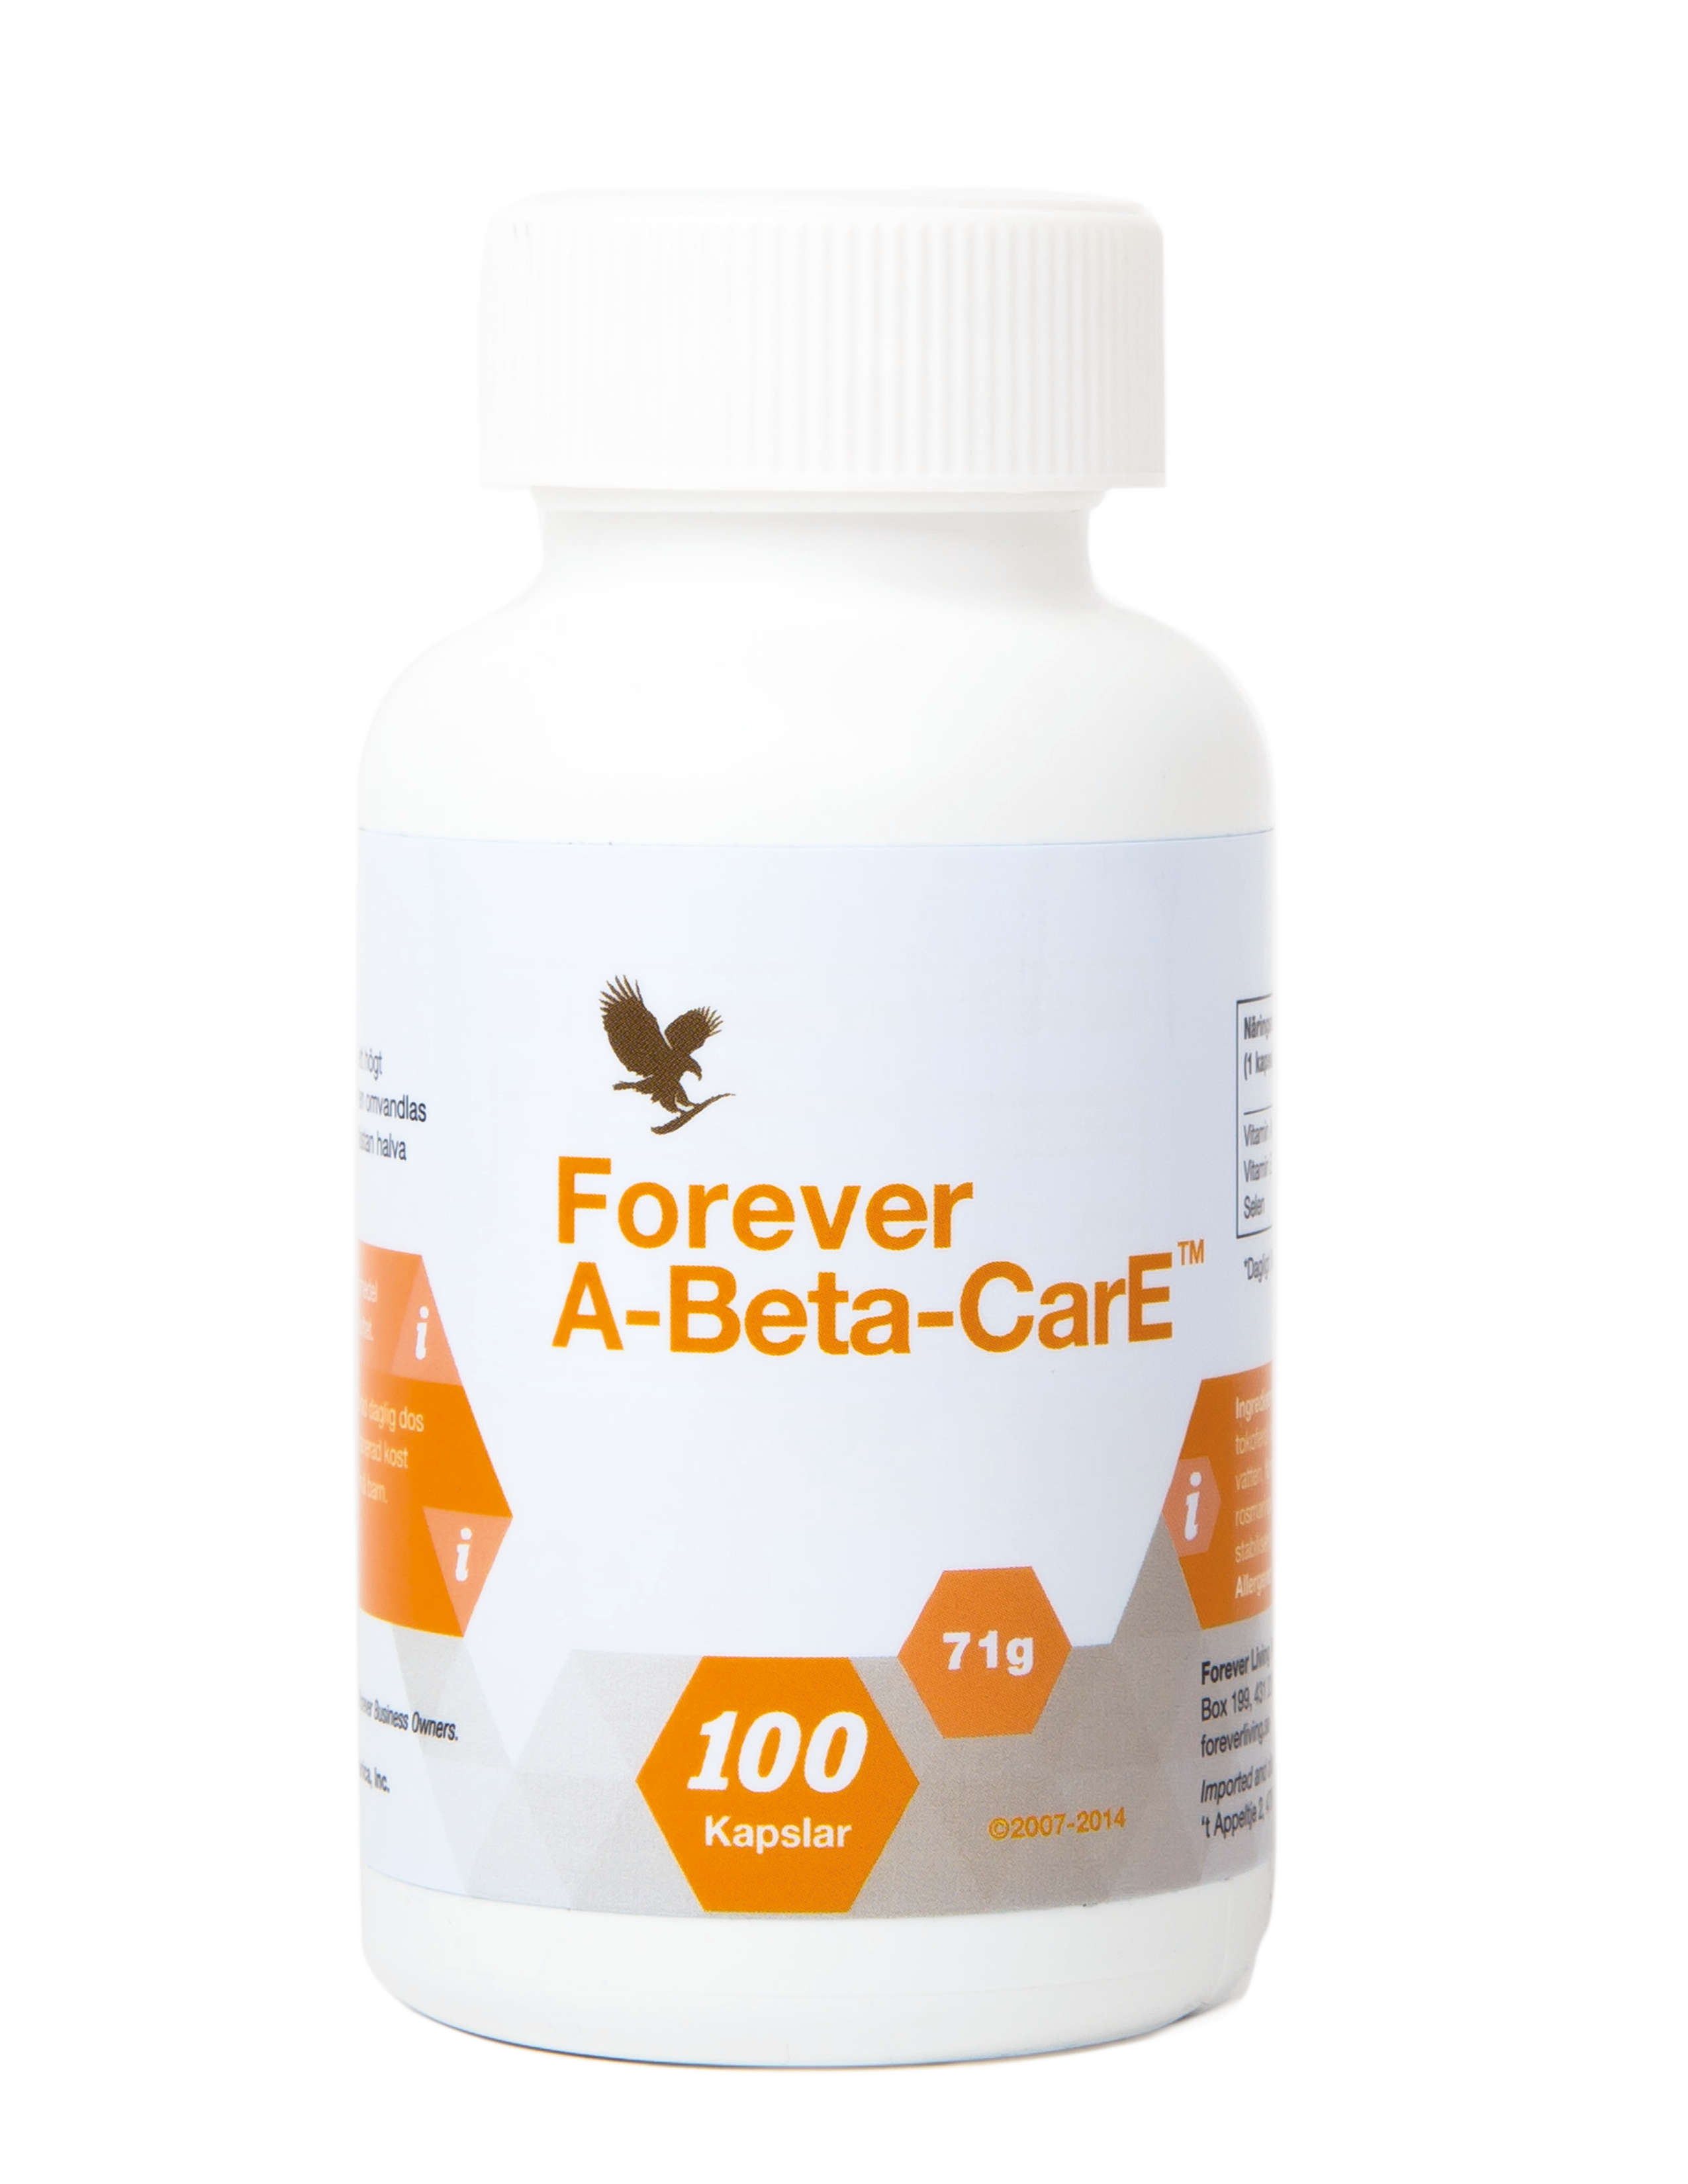 Forever A-Beta-CarE is a supplement specially for those focused on eyesight and the immune system.